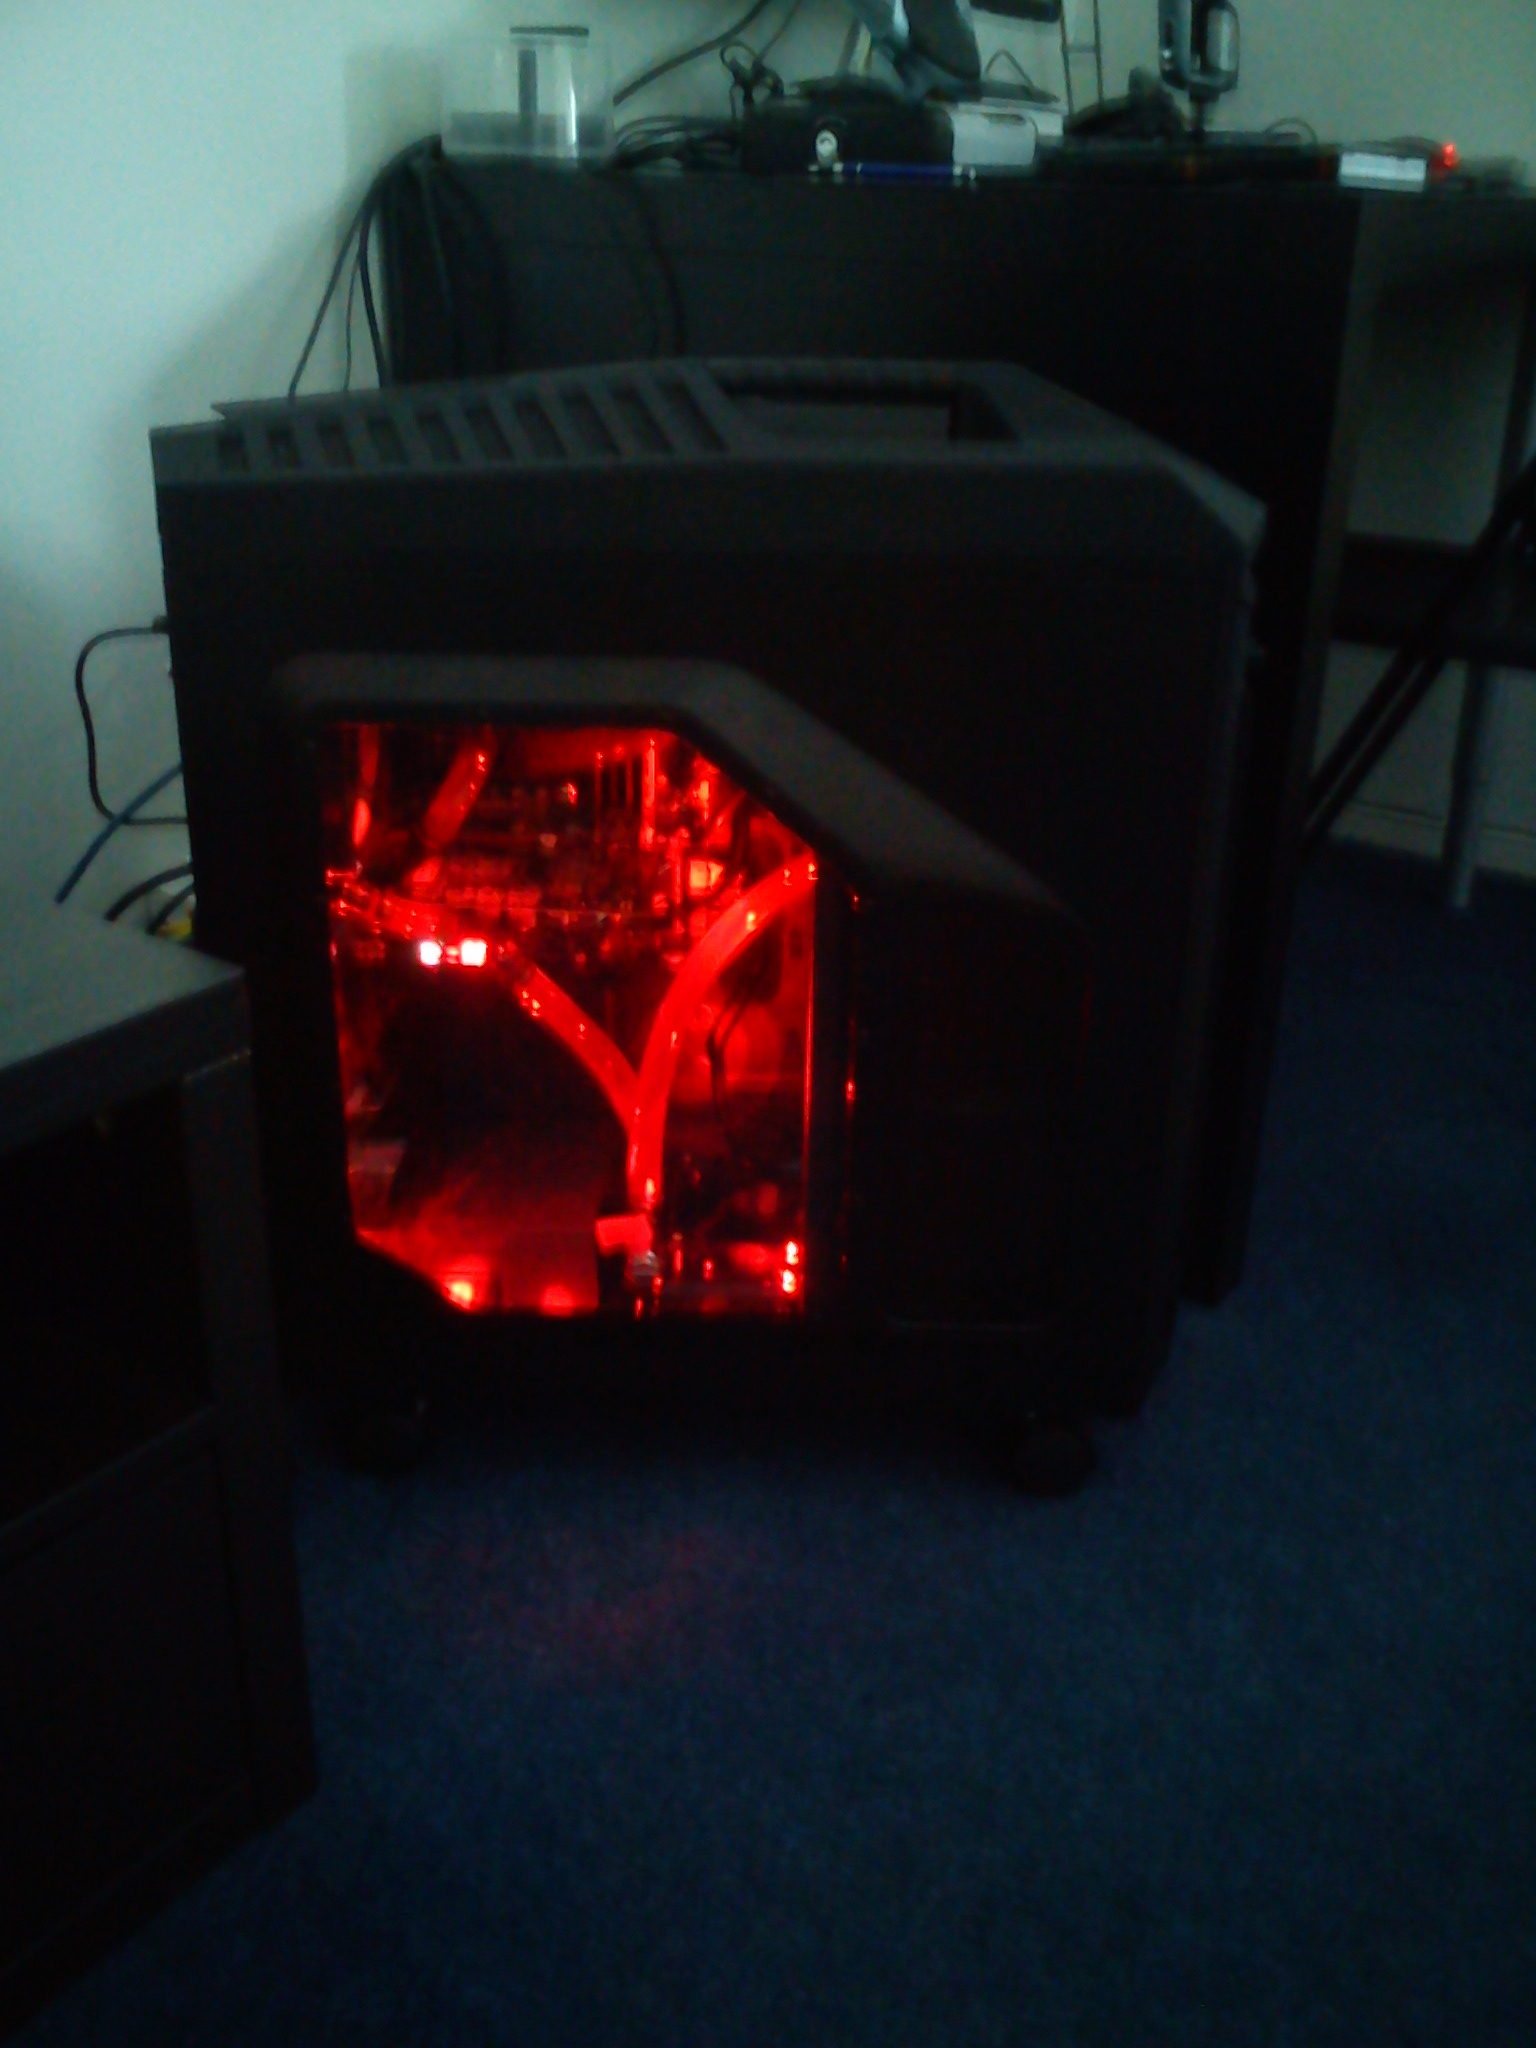 Added the NZXT Sleeved LED kit (red), setting 3